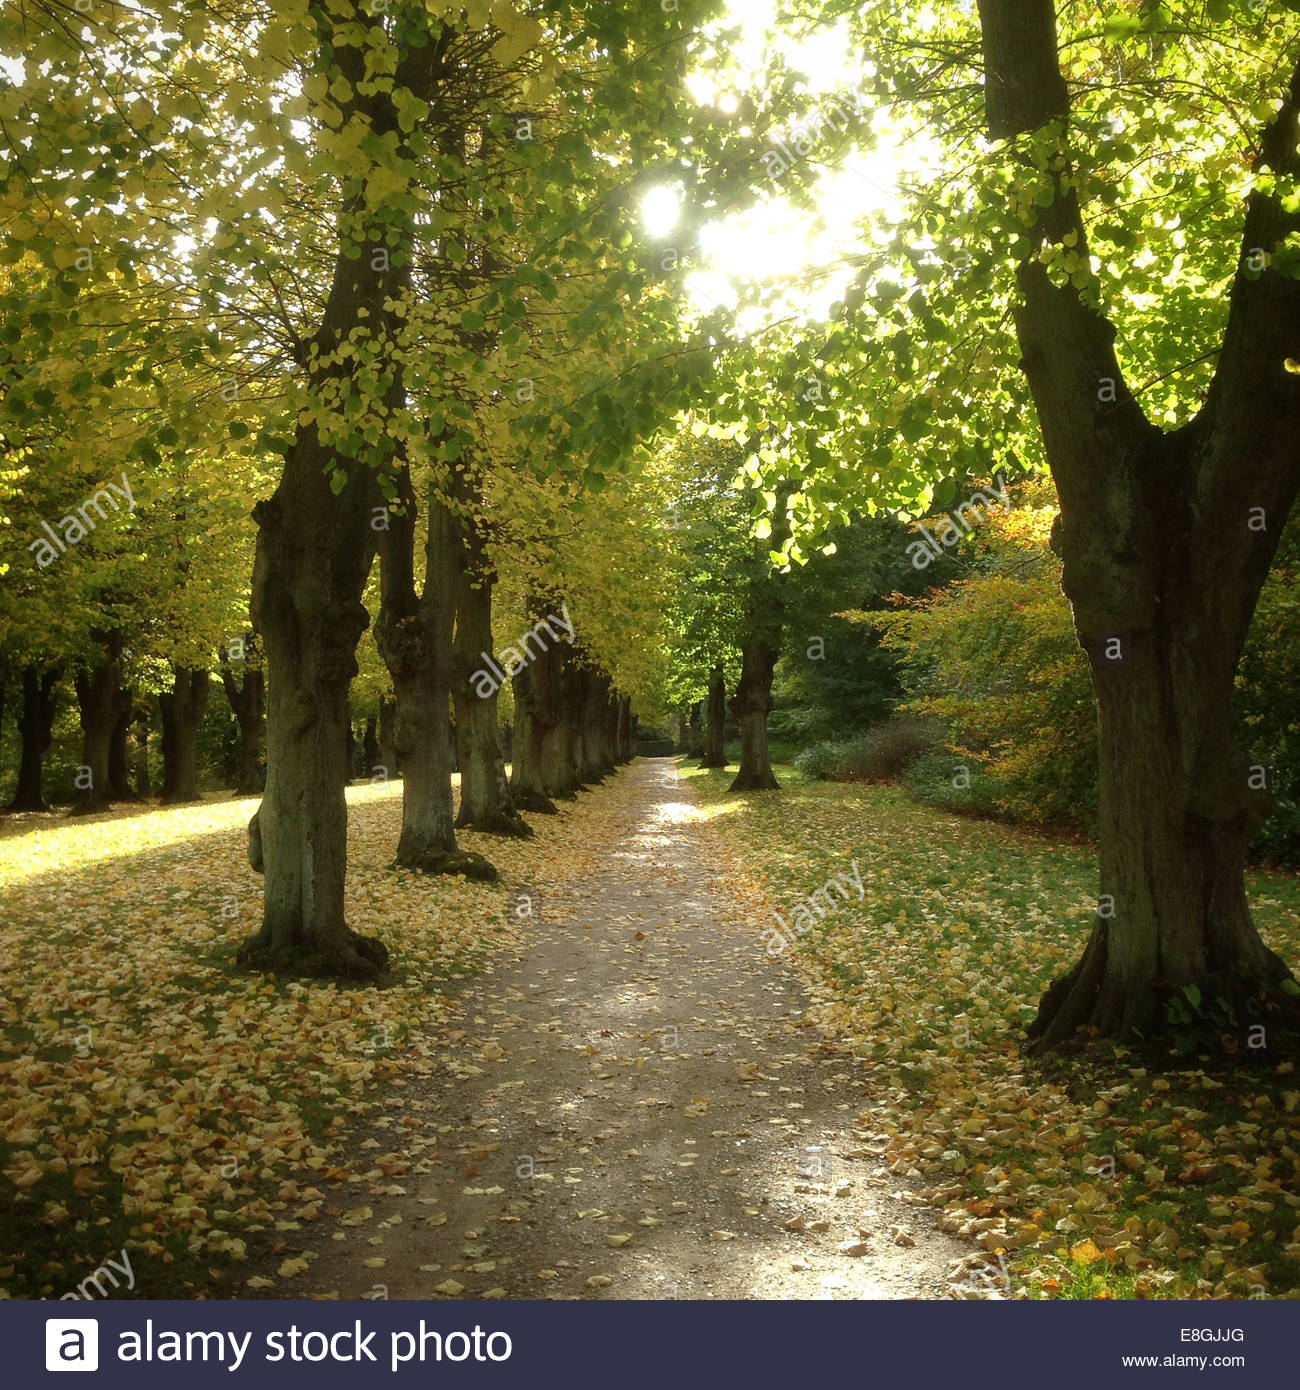 Tree lined path - Stock Image